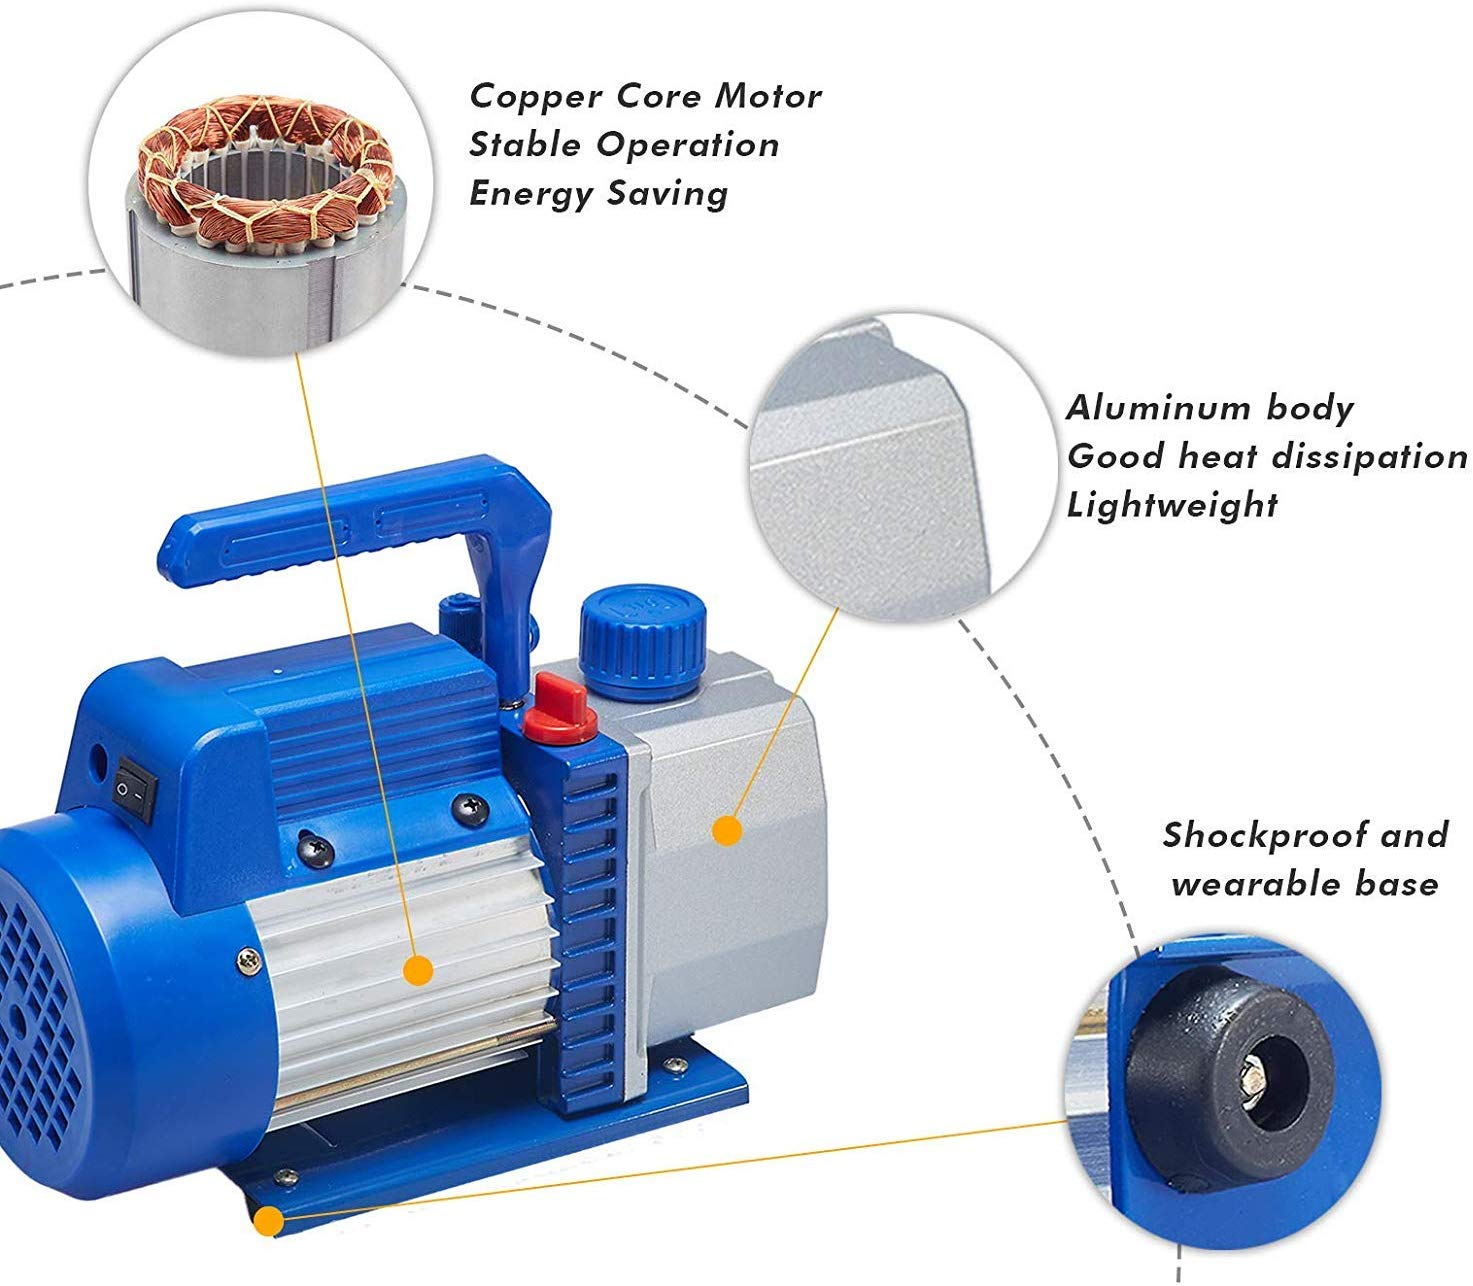 "3.0 CFM Single-Stage 5 Pa Rotary Vane Economy Vacuum Pump for HVAC, Air Conditioner Refrigerant,Food Packaging,Milking, 1/4"" Flare Inlet Port, Blue"